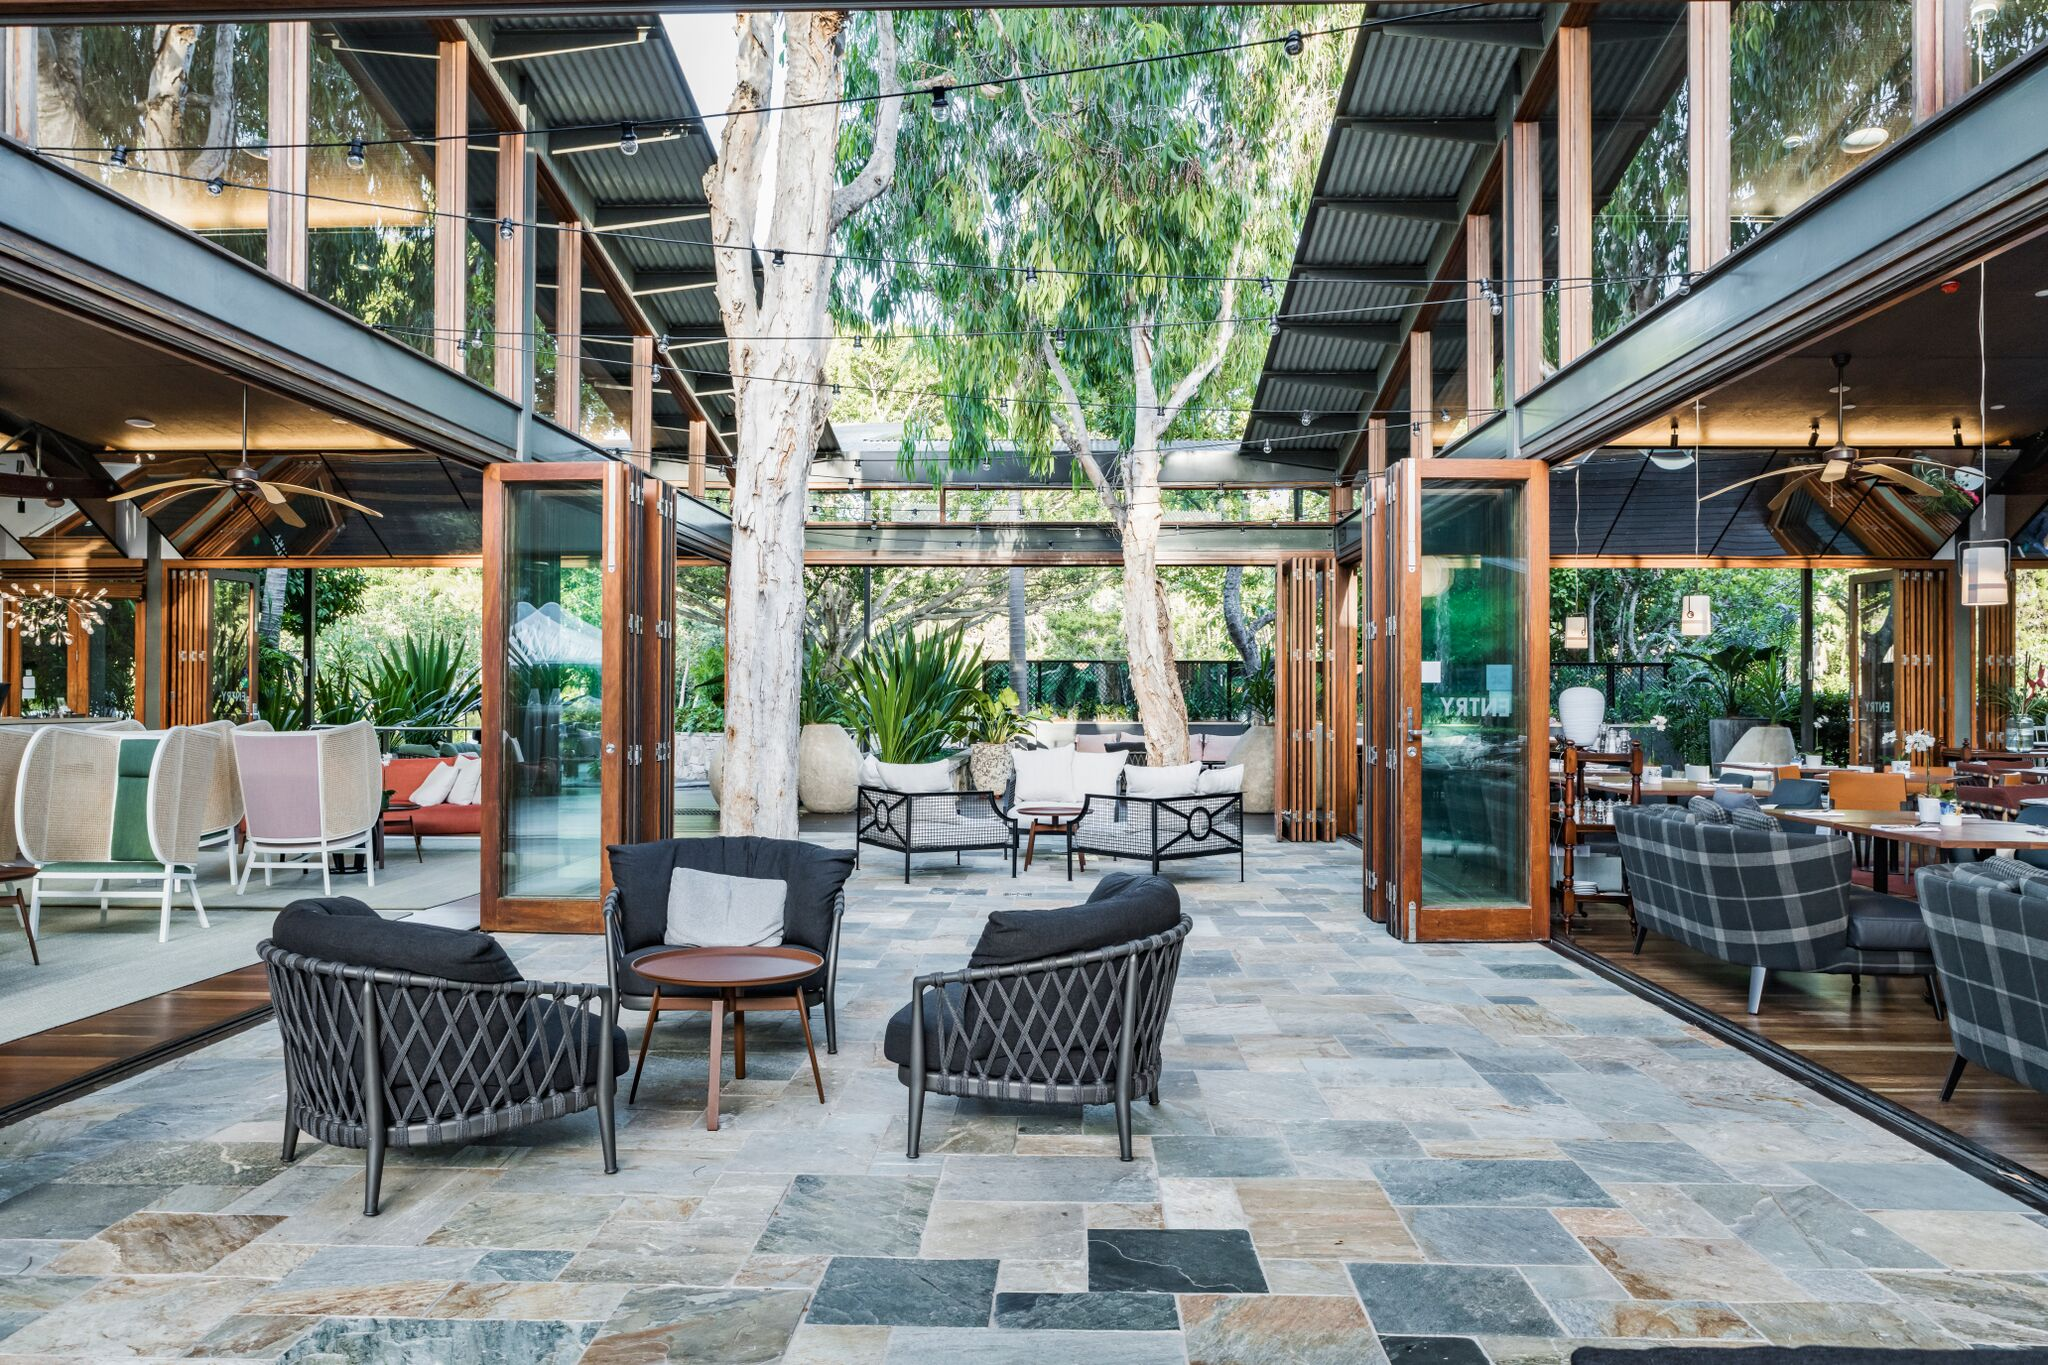 The new courtyard space reinvigorates the existing breezeway between the restaurant and the reception and features beautifully detailed flagstone paving. Photo by Michael Wee.